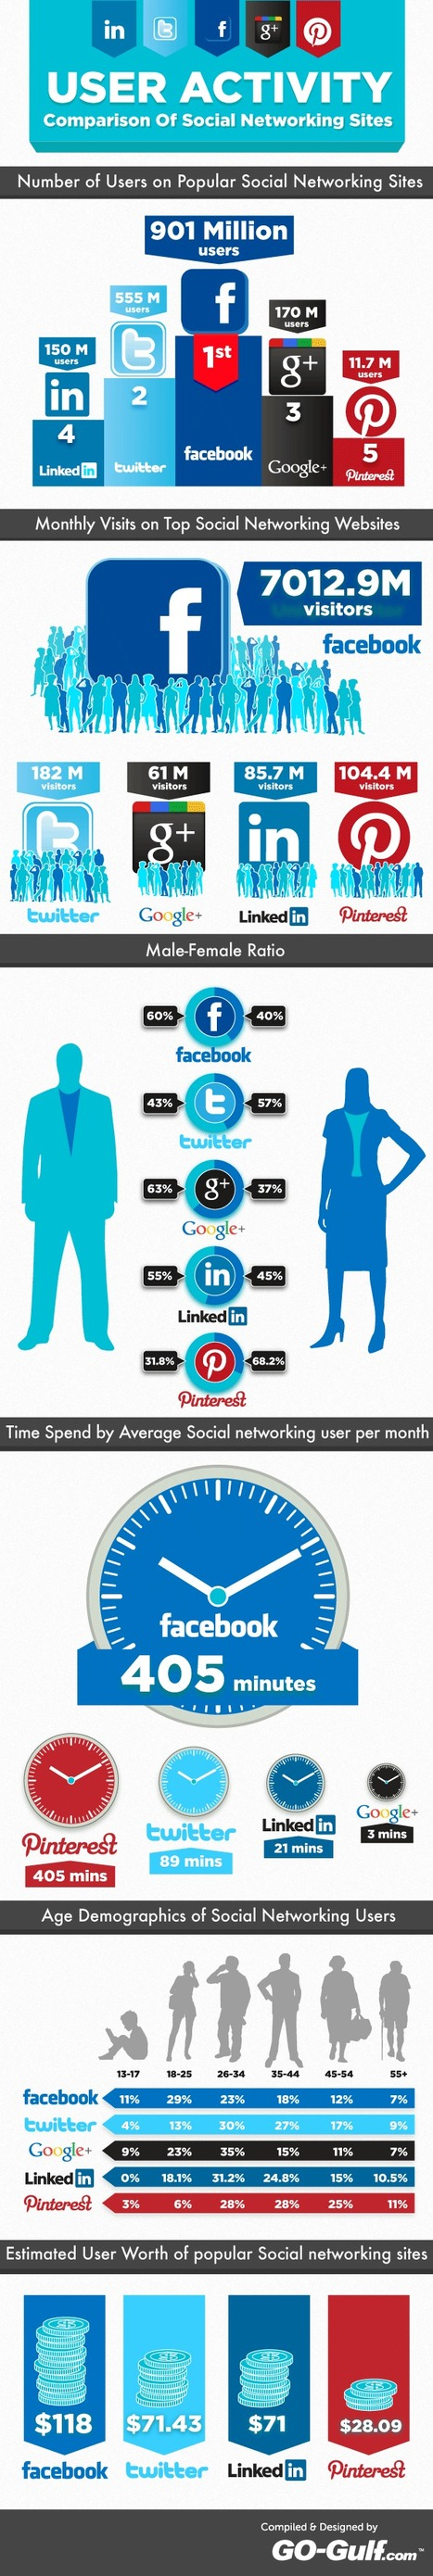 User Activity Comparison Of Popular Social Networking Sites [INFOGRAPHIC] | Business Futures | Scoop.it